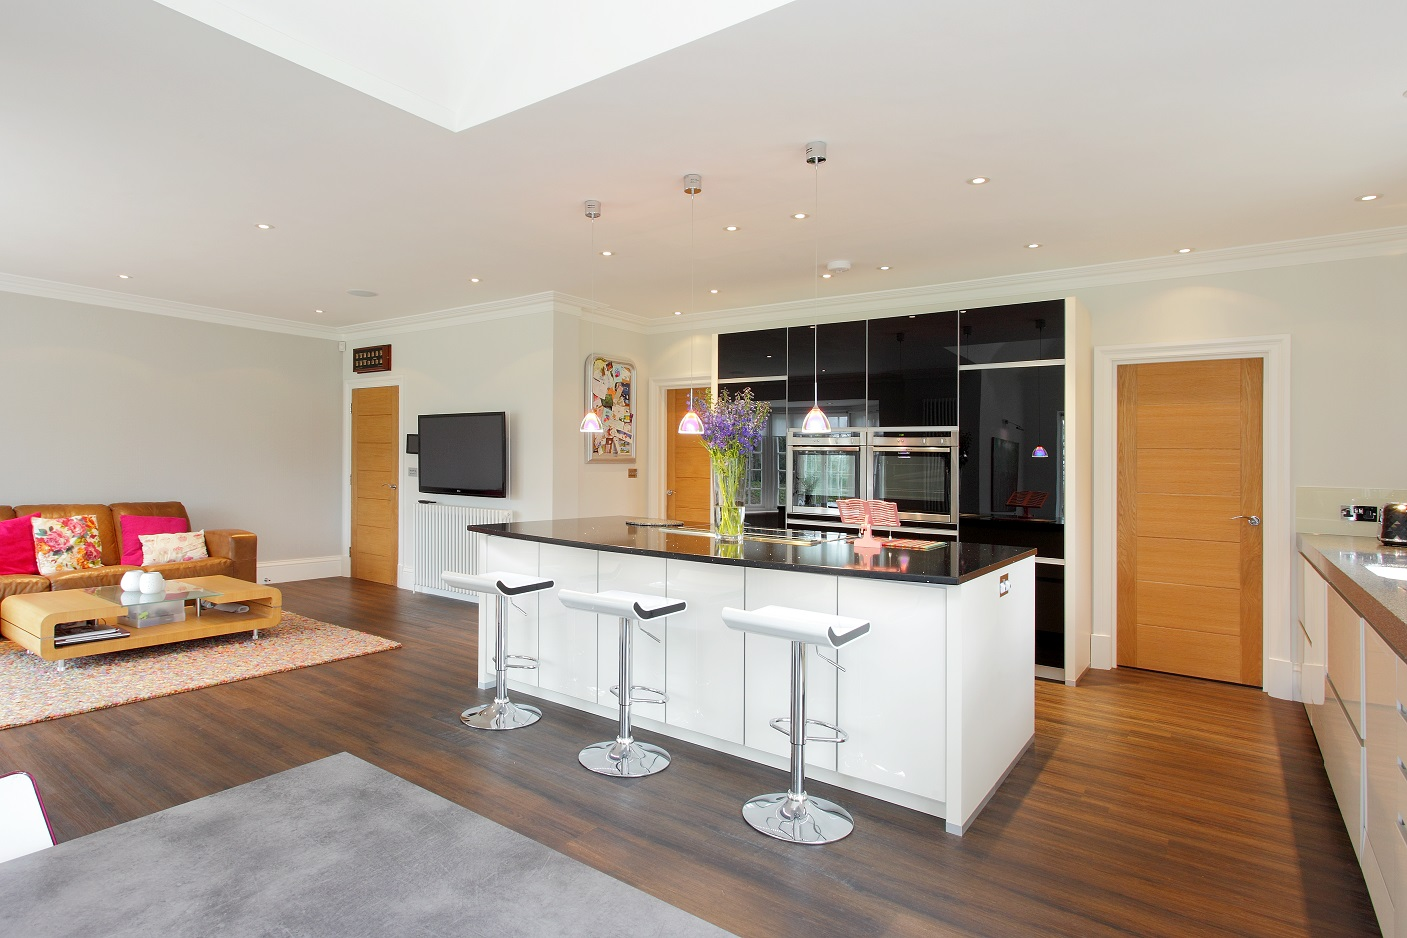 The clients wanted a clean, simple space for family living. The magnolia white and high gloss black ALNO kitchen provides all the functionality and appeal the family needs.